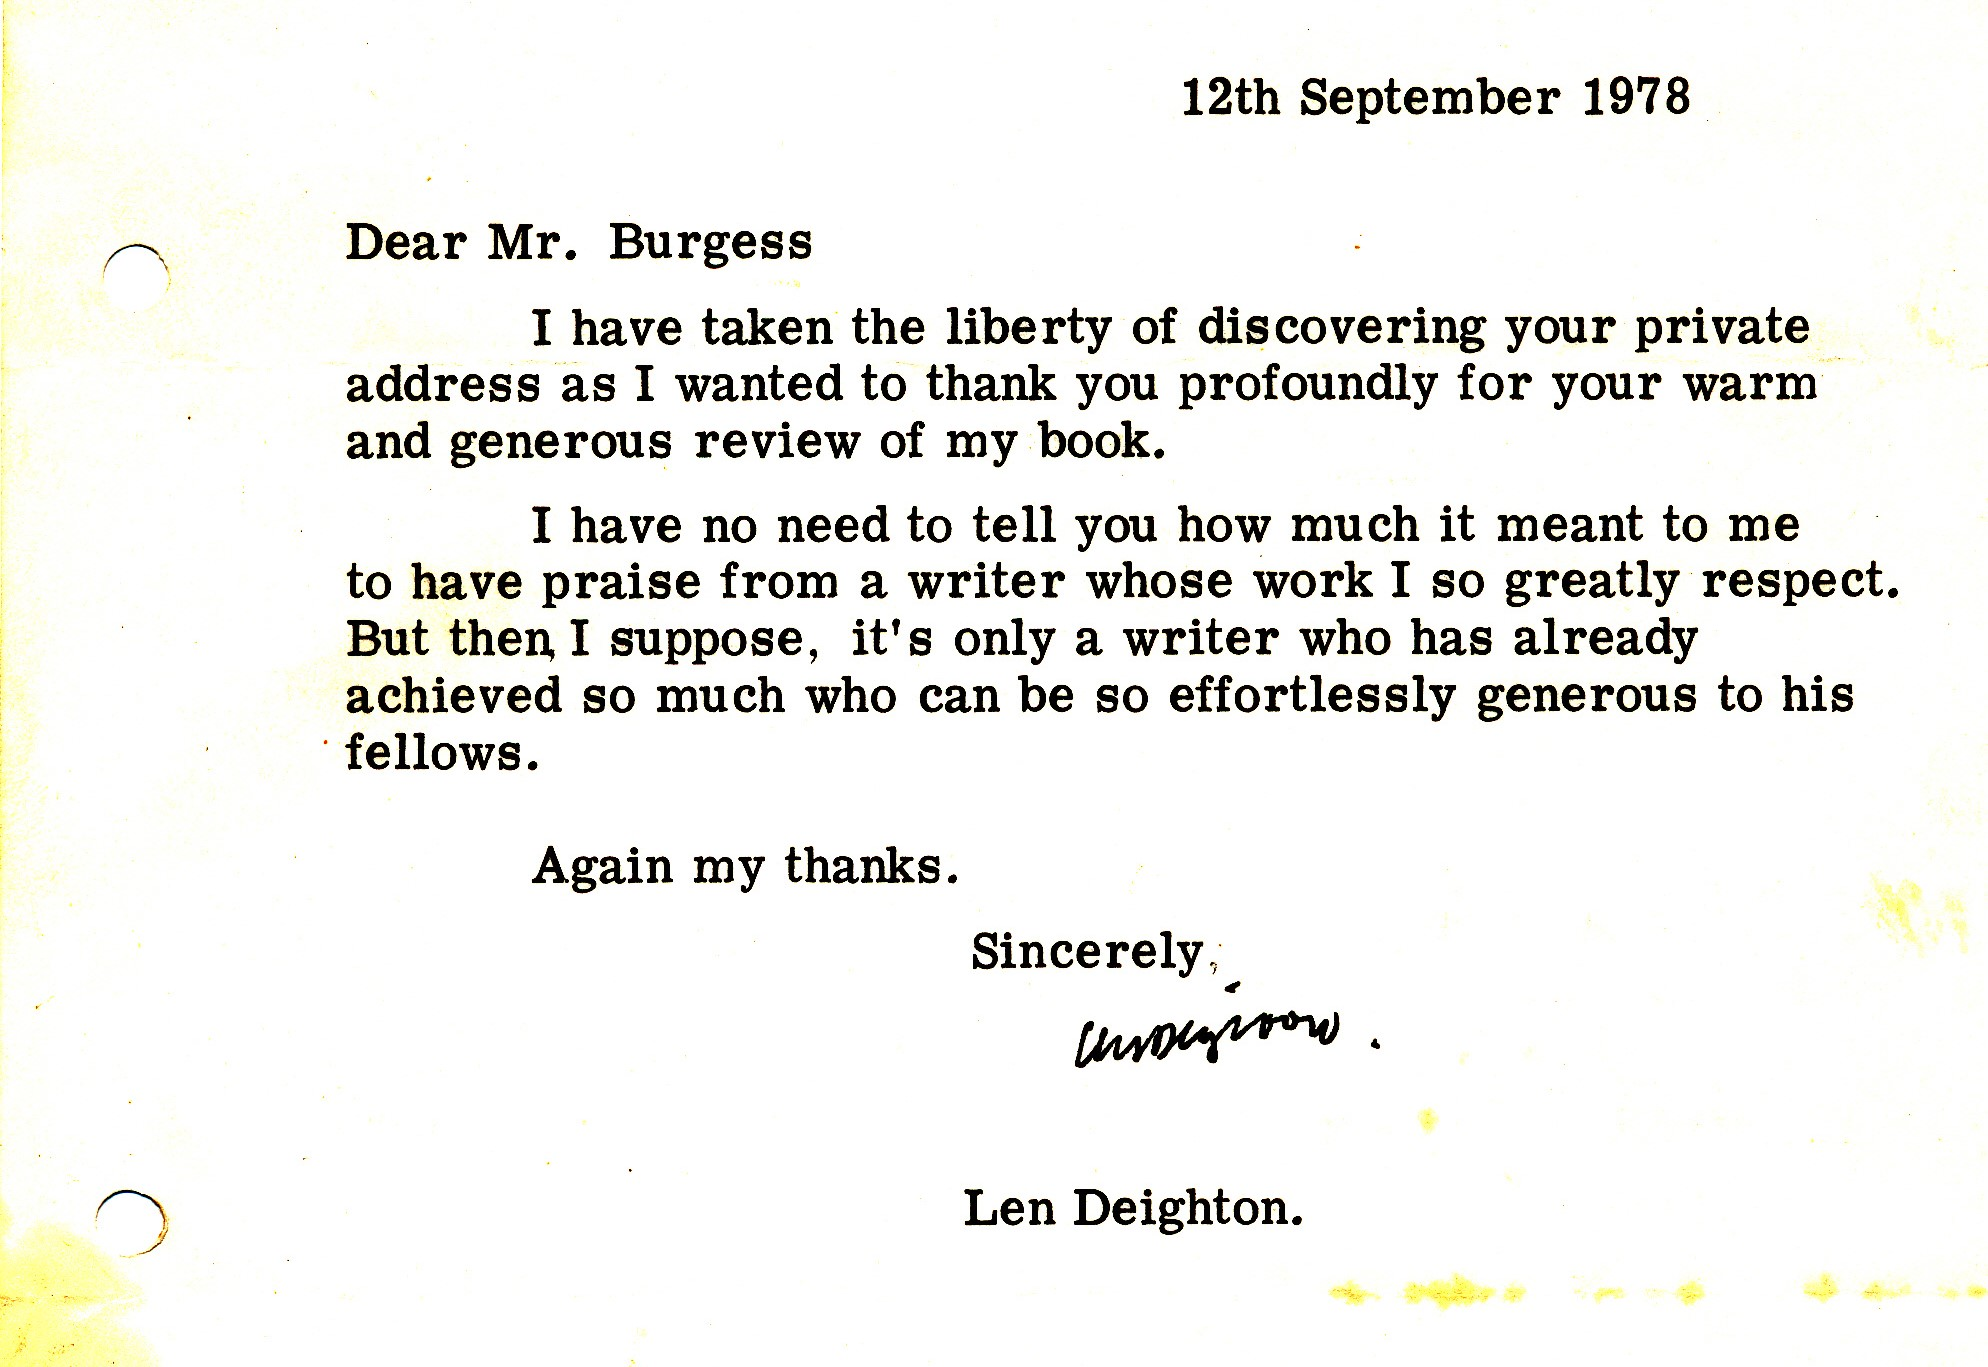 This Letter Hints At The Mutual Respect And Admiration Between Anthony  Burgess And Len Deighton. The Letter Is A Response To Burgessu0027s Review Of  Deightonu0027s ...